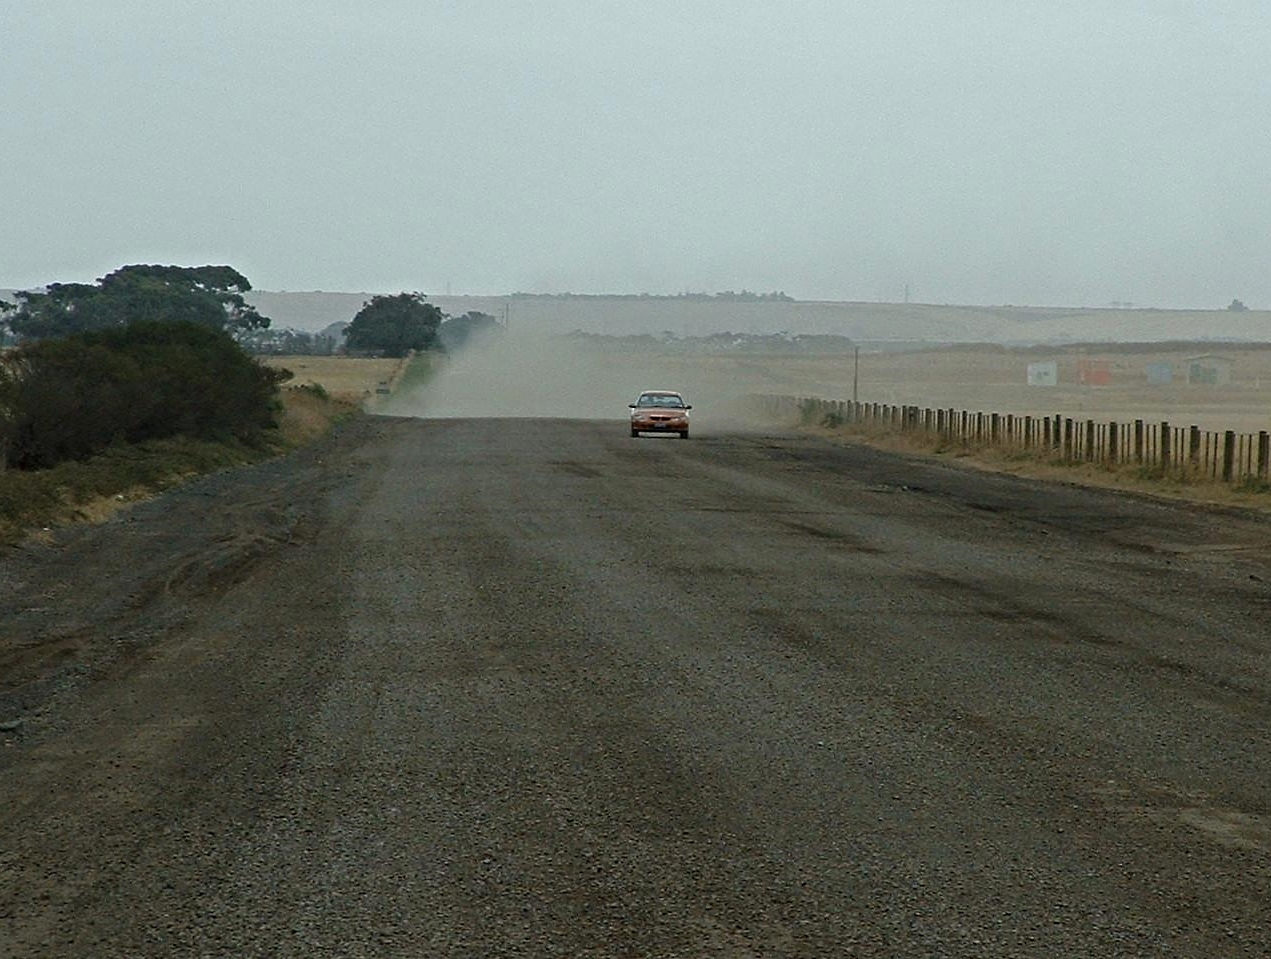 Road before stabilisation with Soilbond's dust control solution